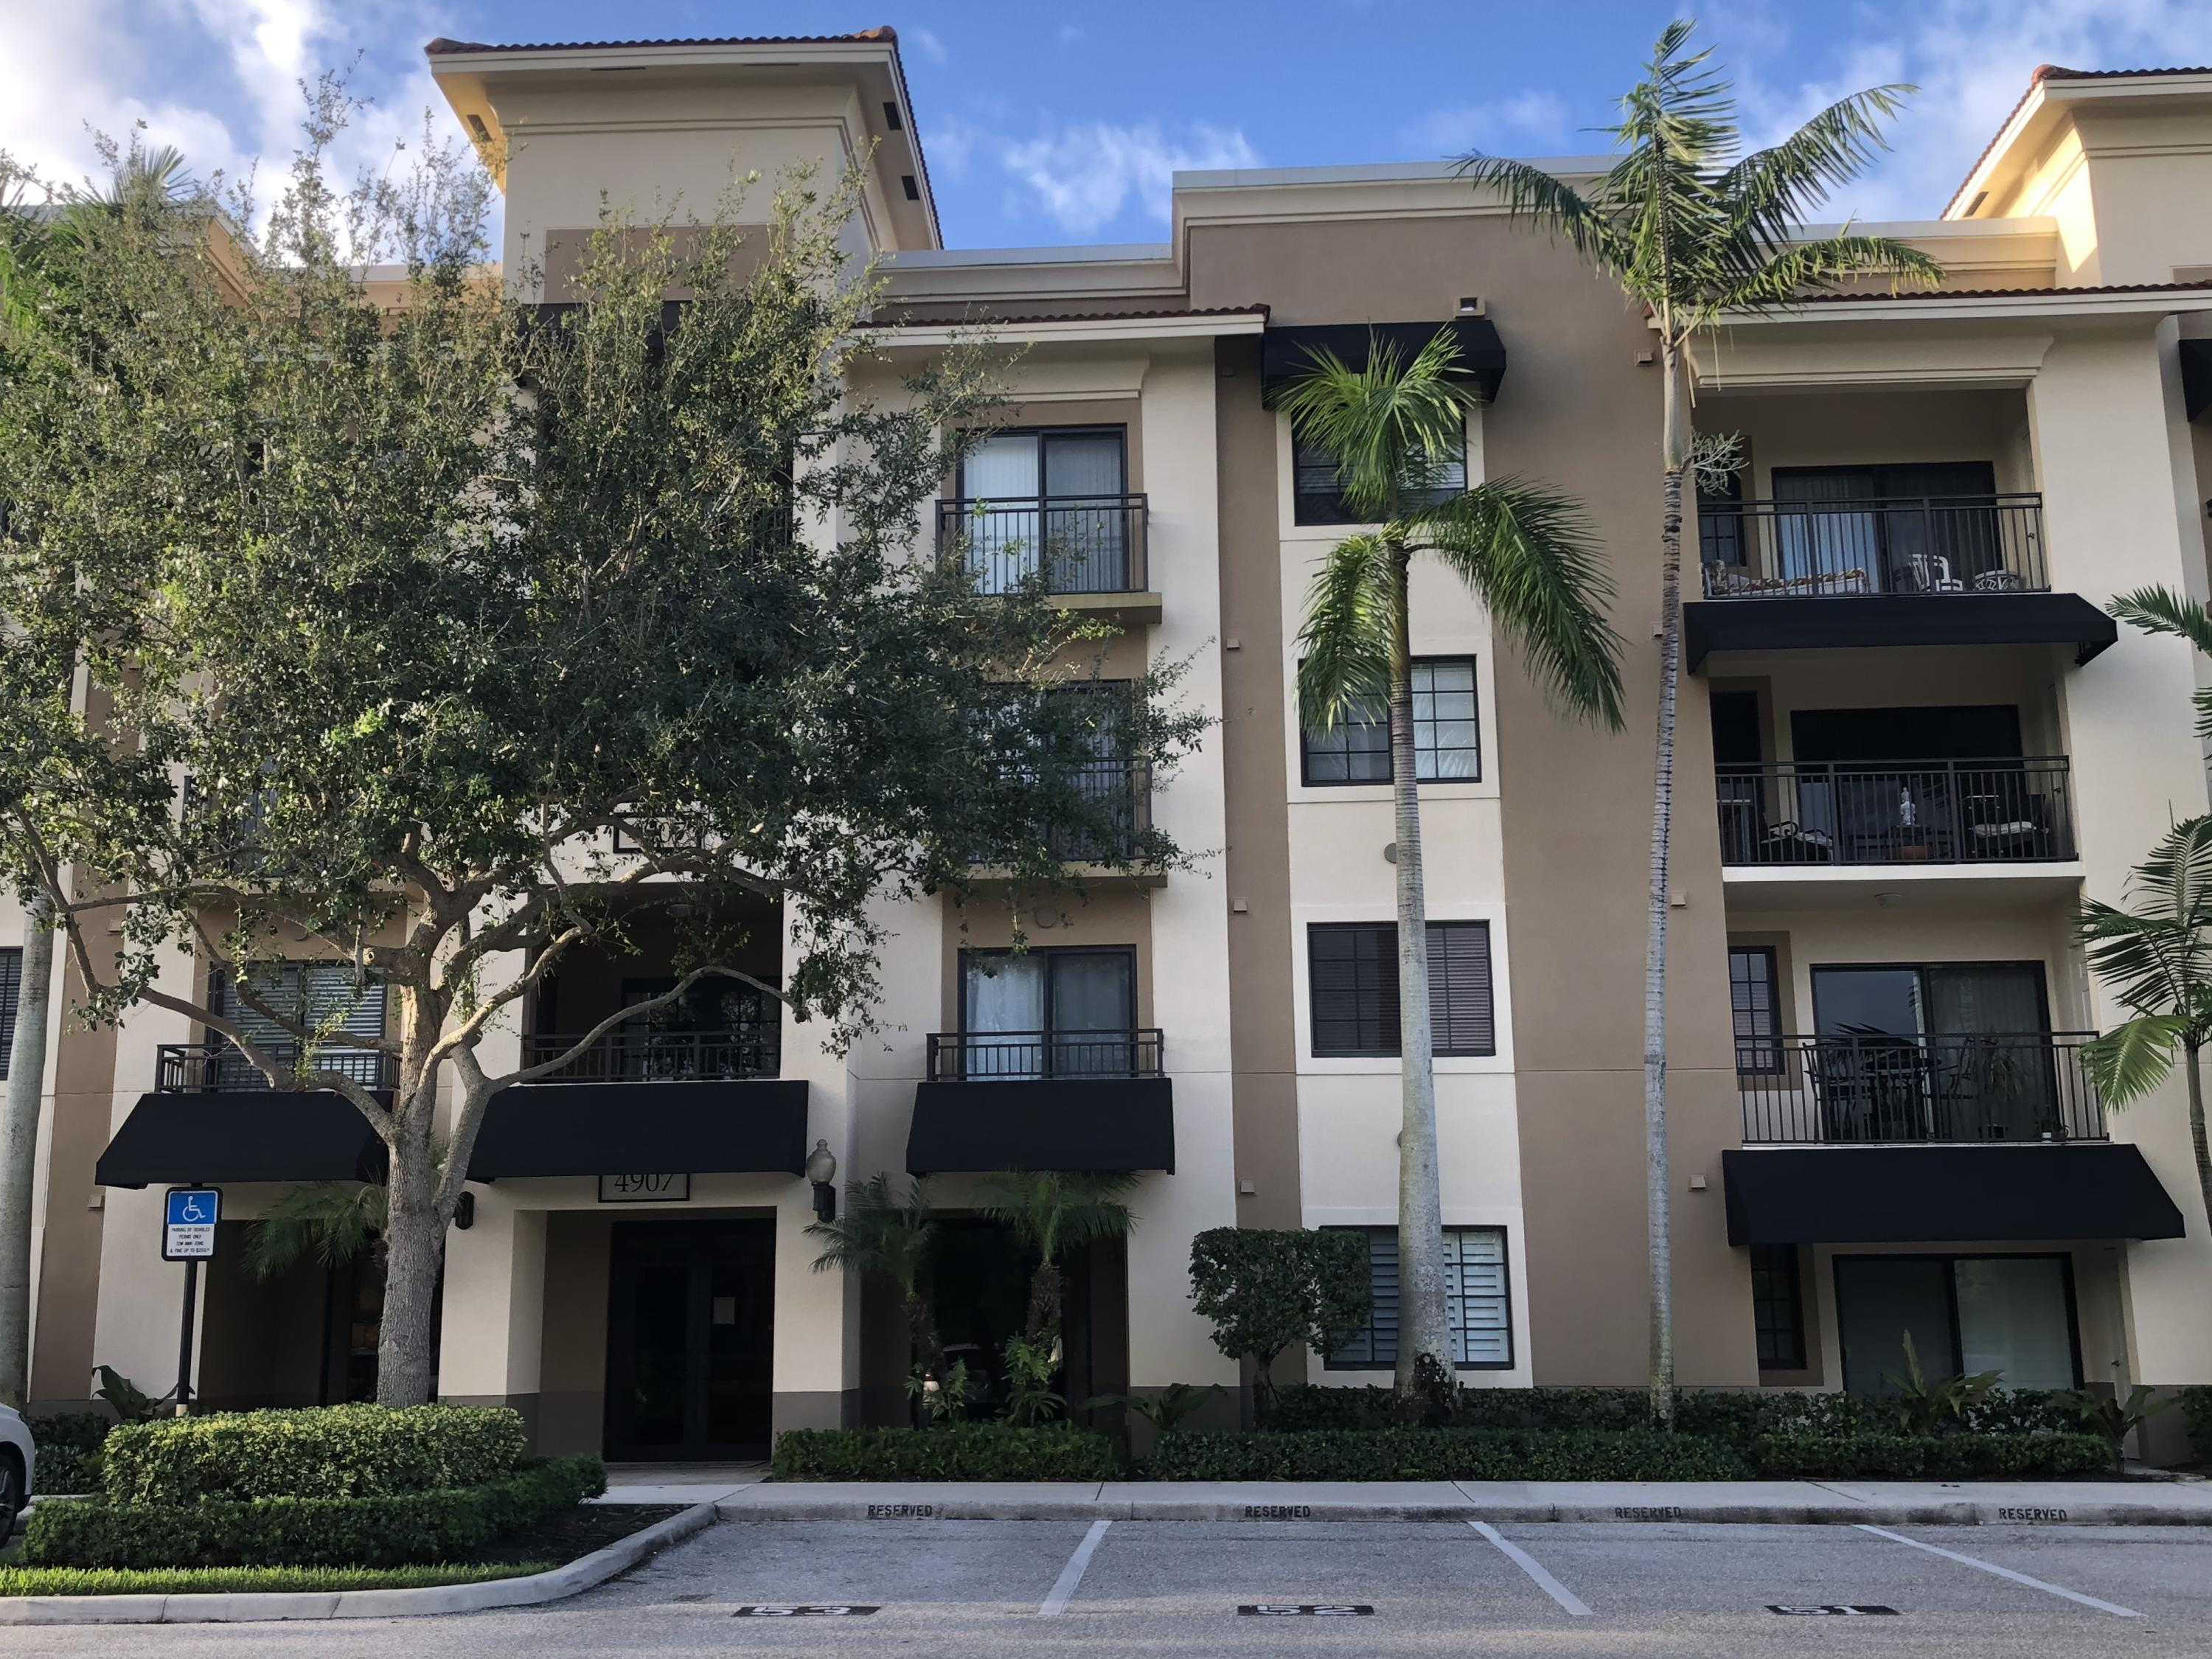 Upscale 1BR/1BA condo located in gated community in Palm Beach Gardens. Updated interior offers volume ceilings with crown molding, plank tile wood look flooring and impact glass throughout, and freshly painted grey walls and white trim. Open floor plan features an updated kitchen with granite counters, stainless steel appliances, adjoining living and dining areas and a separate laundry room with full size washer and dryer. Master suite has a large walk-in closet and an adjoining full bathroom with dual sinks. Exterior offers a tranquil covered balcony off the living area and master suite overlooking landscaped courtyard views. Community offers resort style living with a clubhouse, media room, business center, fitness center, heated pool, tennis courts, a car wash area and more!